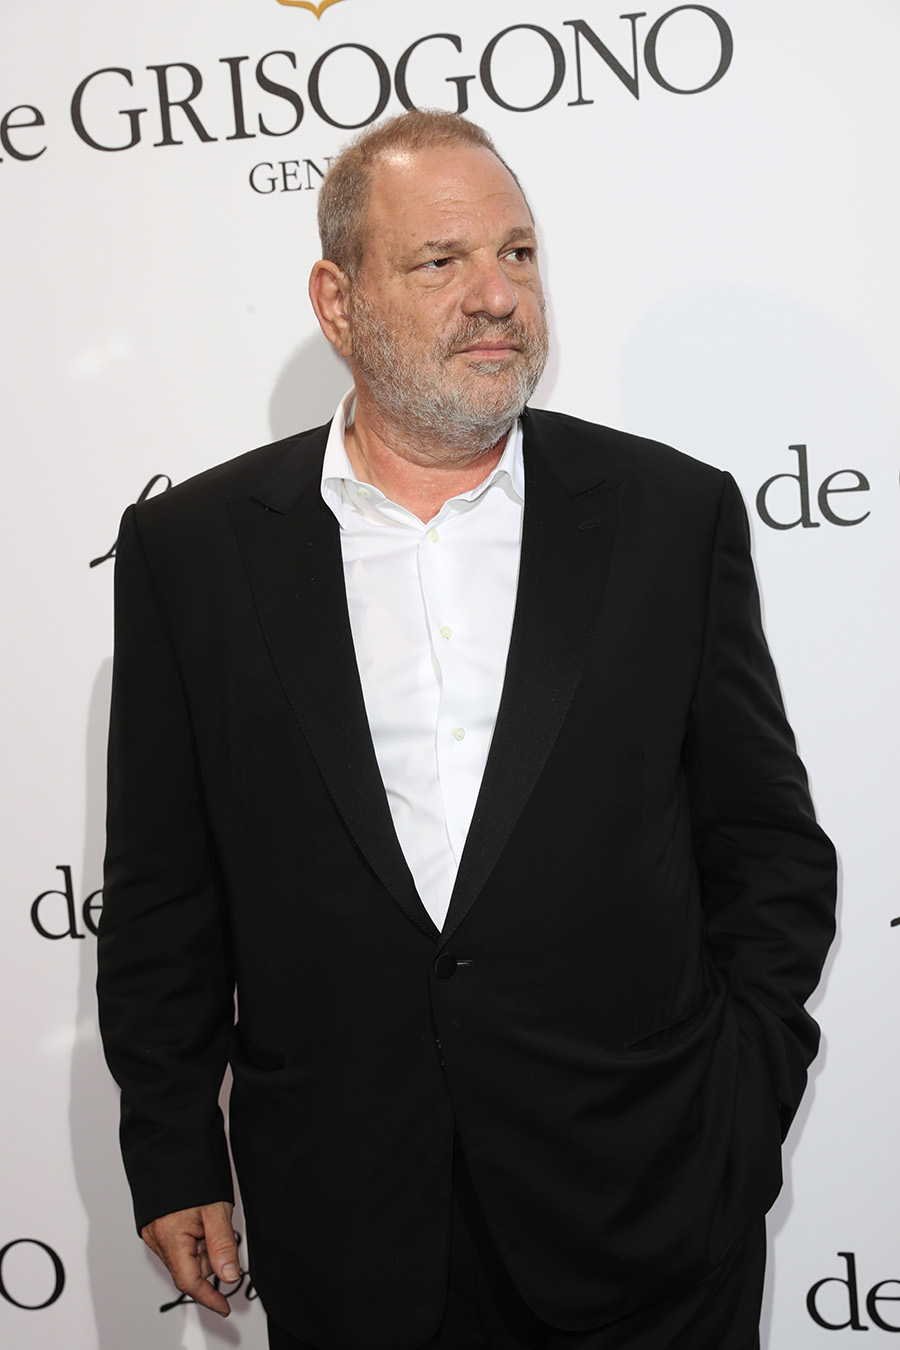 DL u375744 032. Harvey Weinstein, el acosador de Hollywood